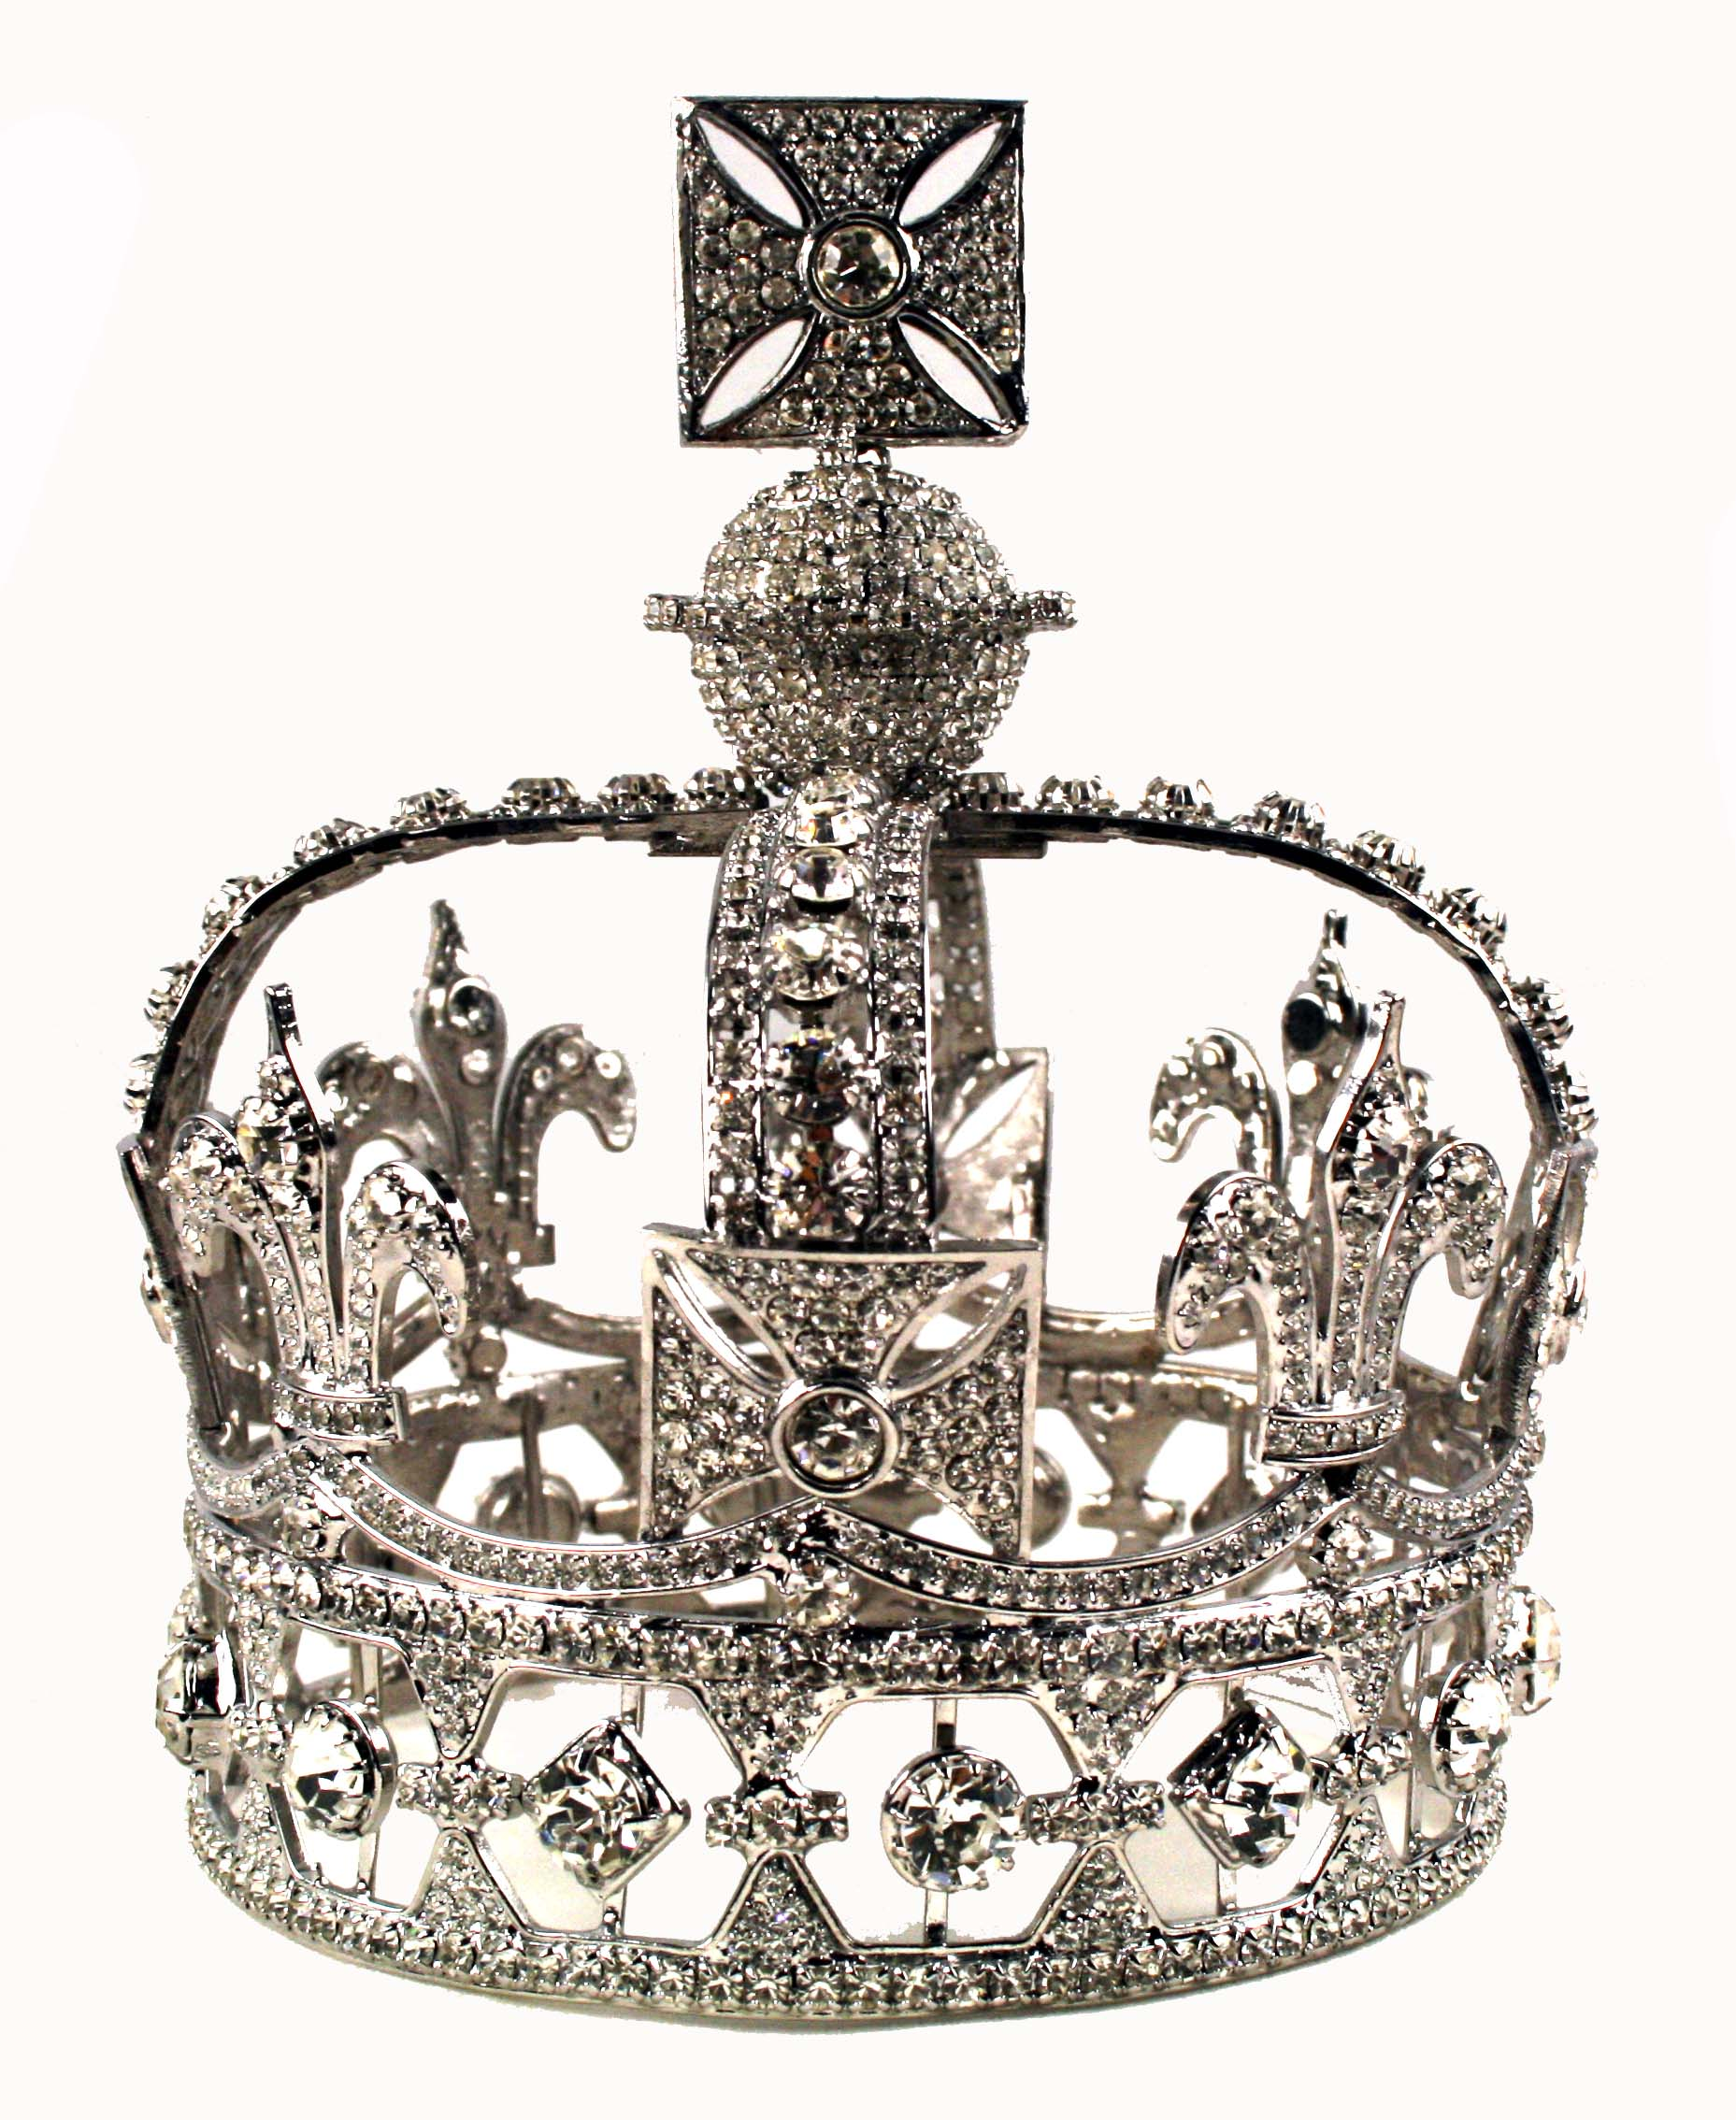 Gracie the queen s private diamond collection a talk for Englisch krone